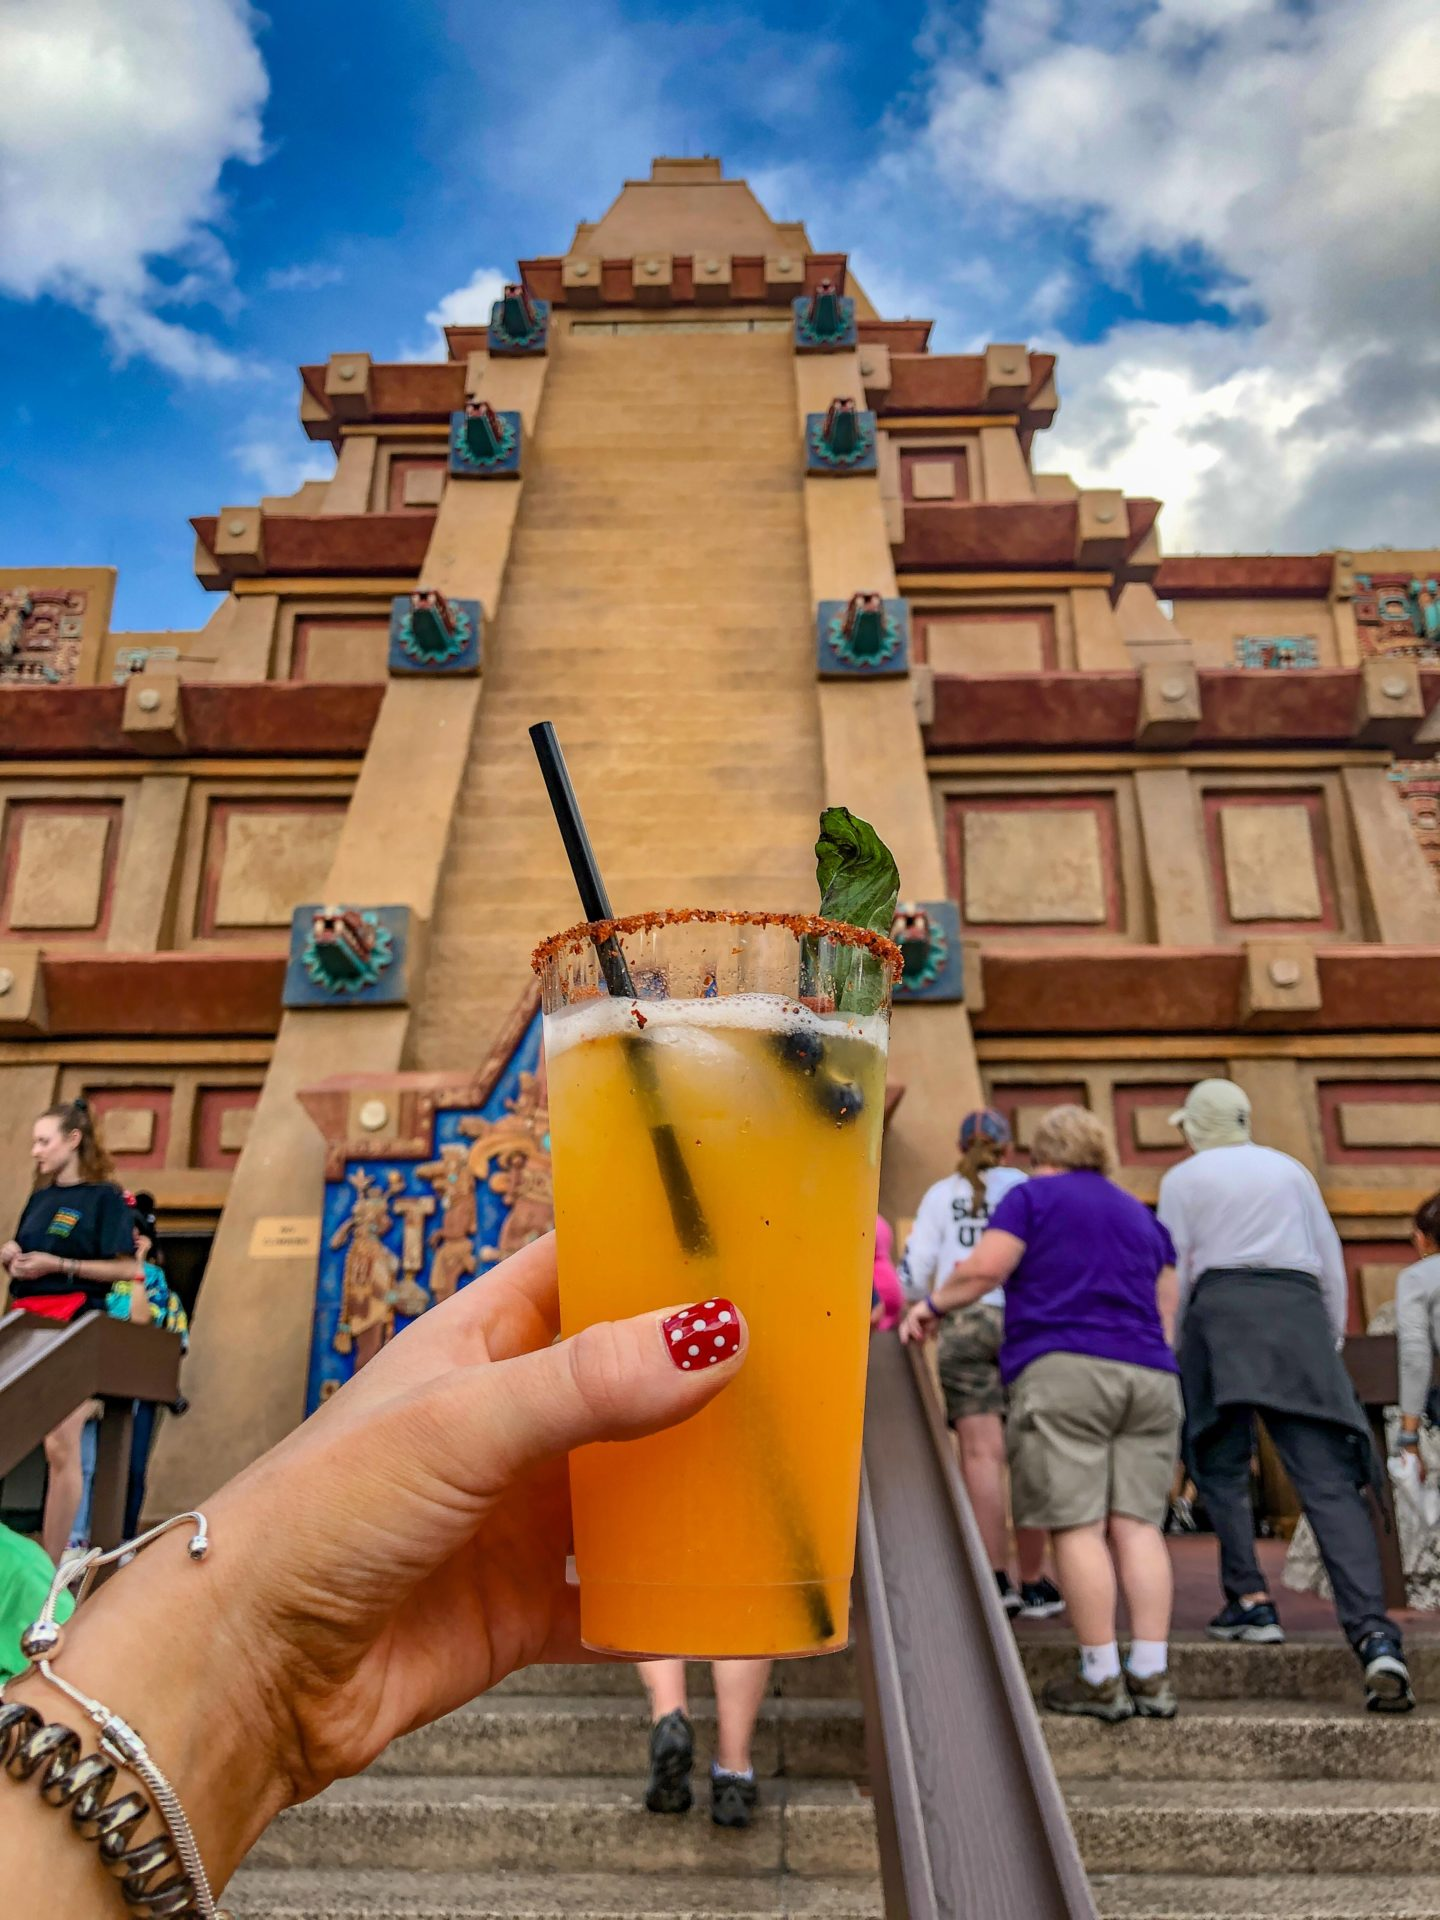 Adult Guide to Disney World Theme Parks Broken Down by Park | Running in Heels | Kasey holds a Maelstrom (Mango Habanero) Margarita in front of the Mexico pavilion in Epcot World Showcase in Disney World.